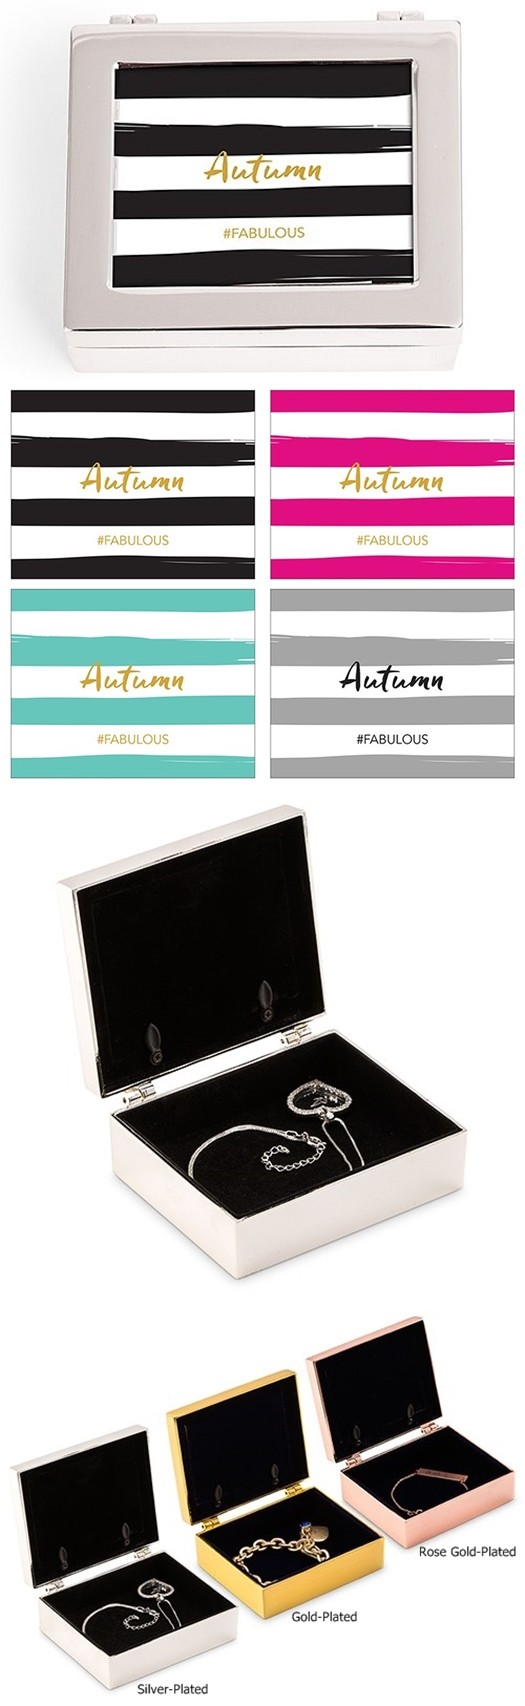 Small Modern Personalized Jewelry Box - Striped Print (3 Box Colors)